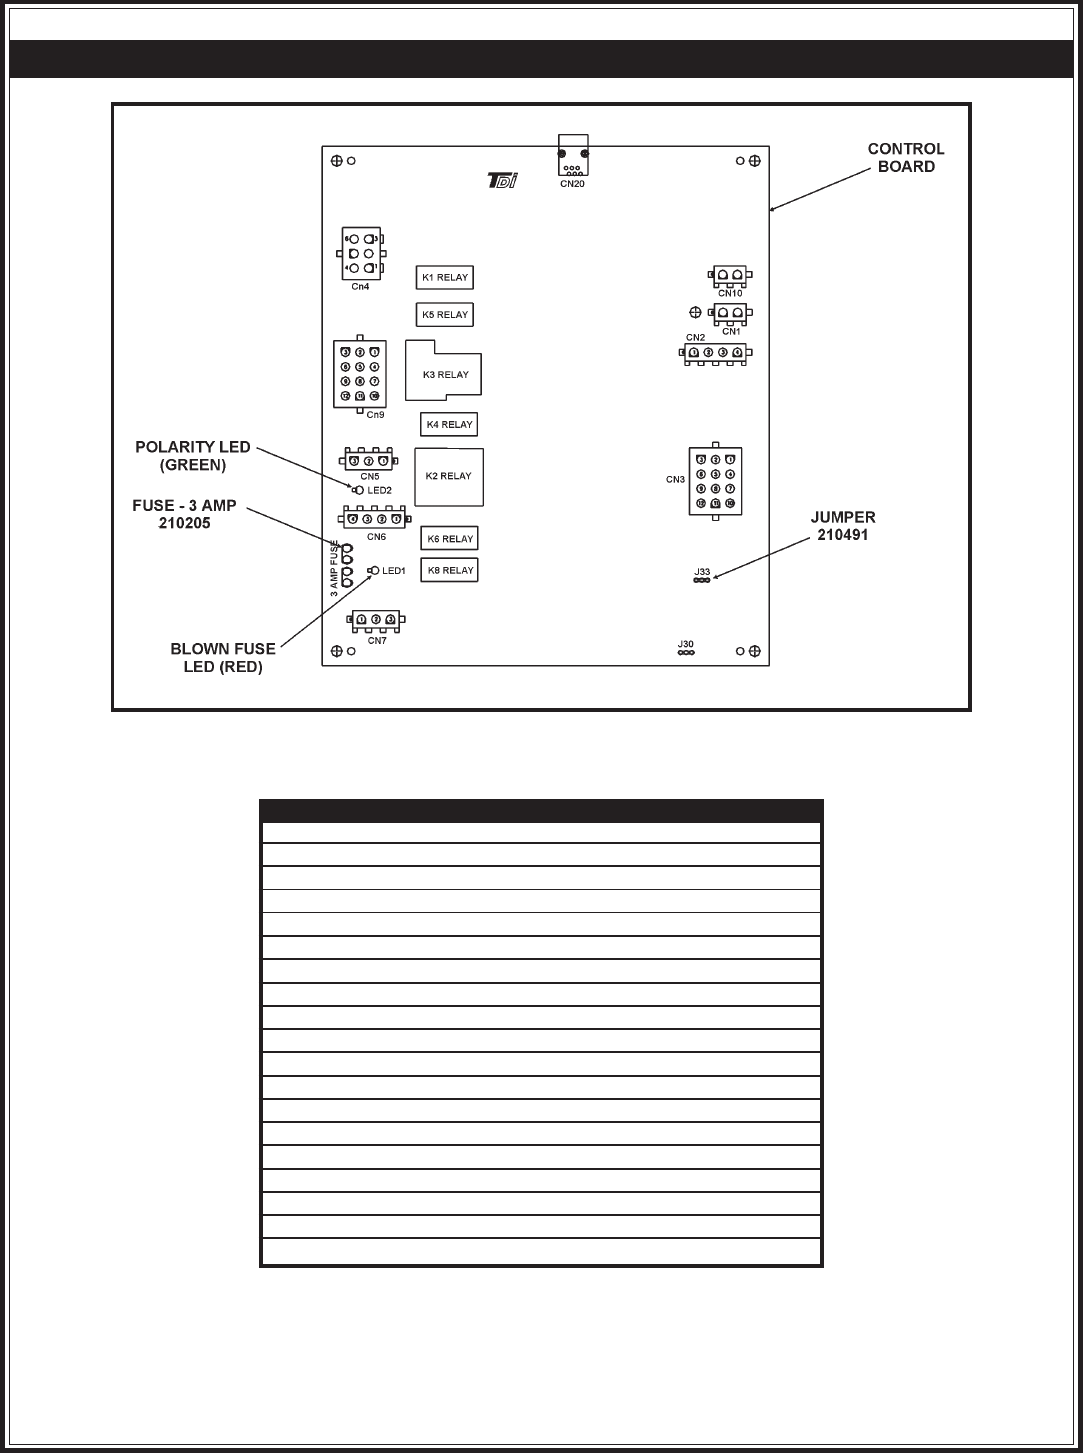 page 11 of a o smith boiler lb lw 500 user guide manualsonline com rh homeappliance manualsonline com Weil-McLain Manuals Fed 5B Manual